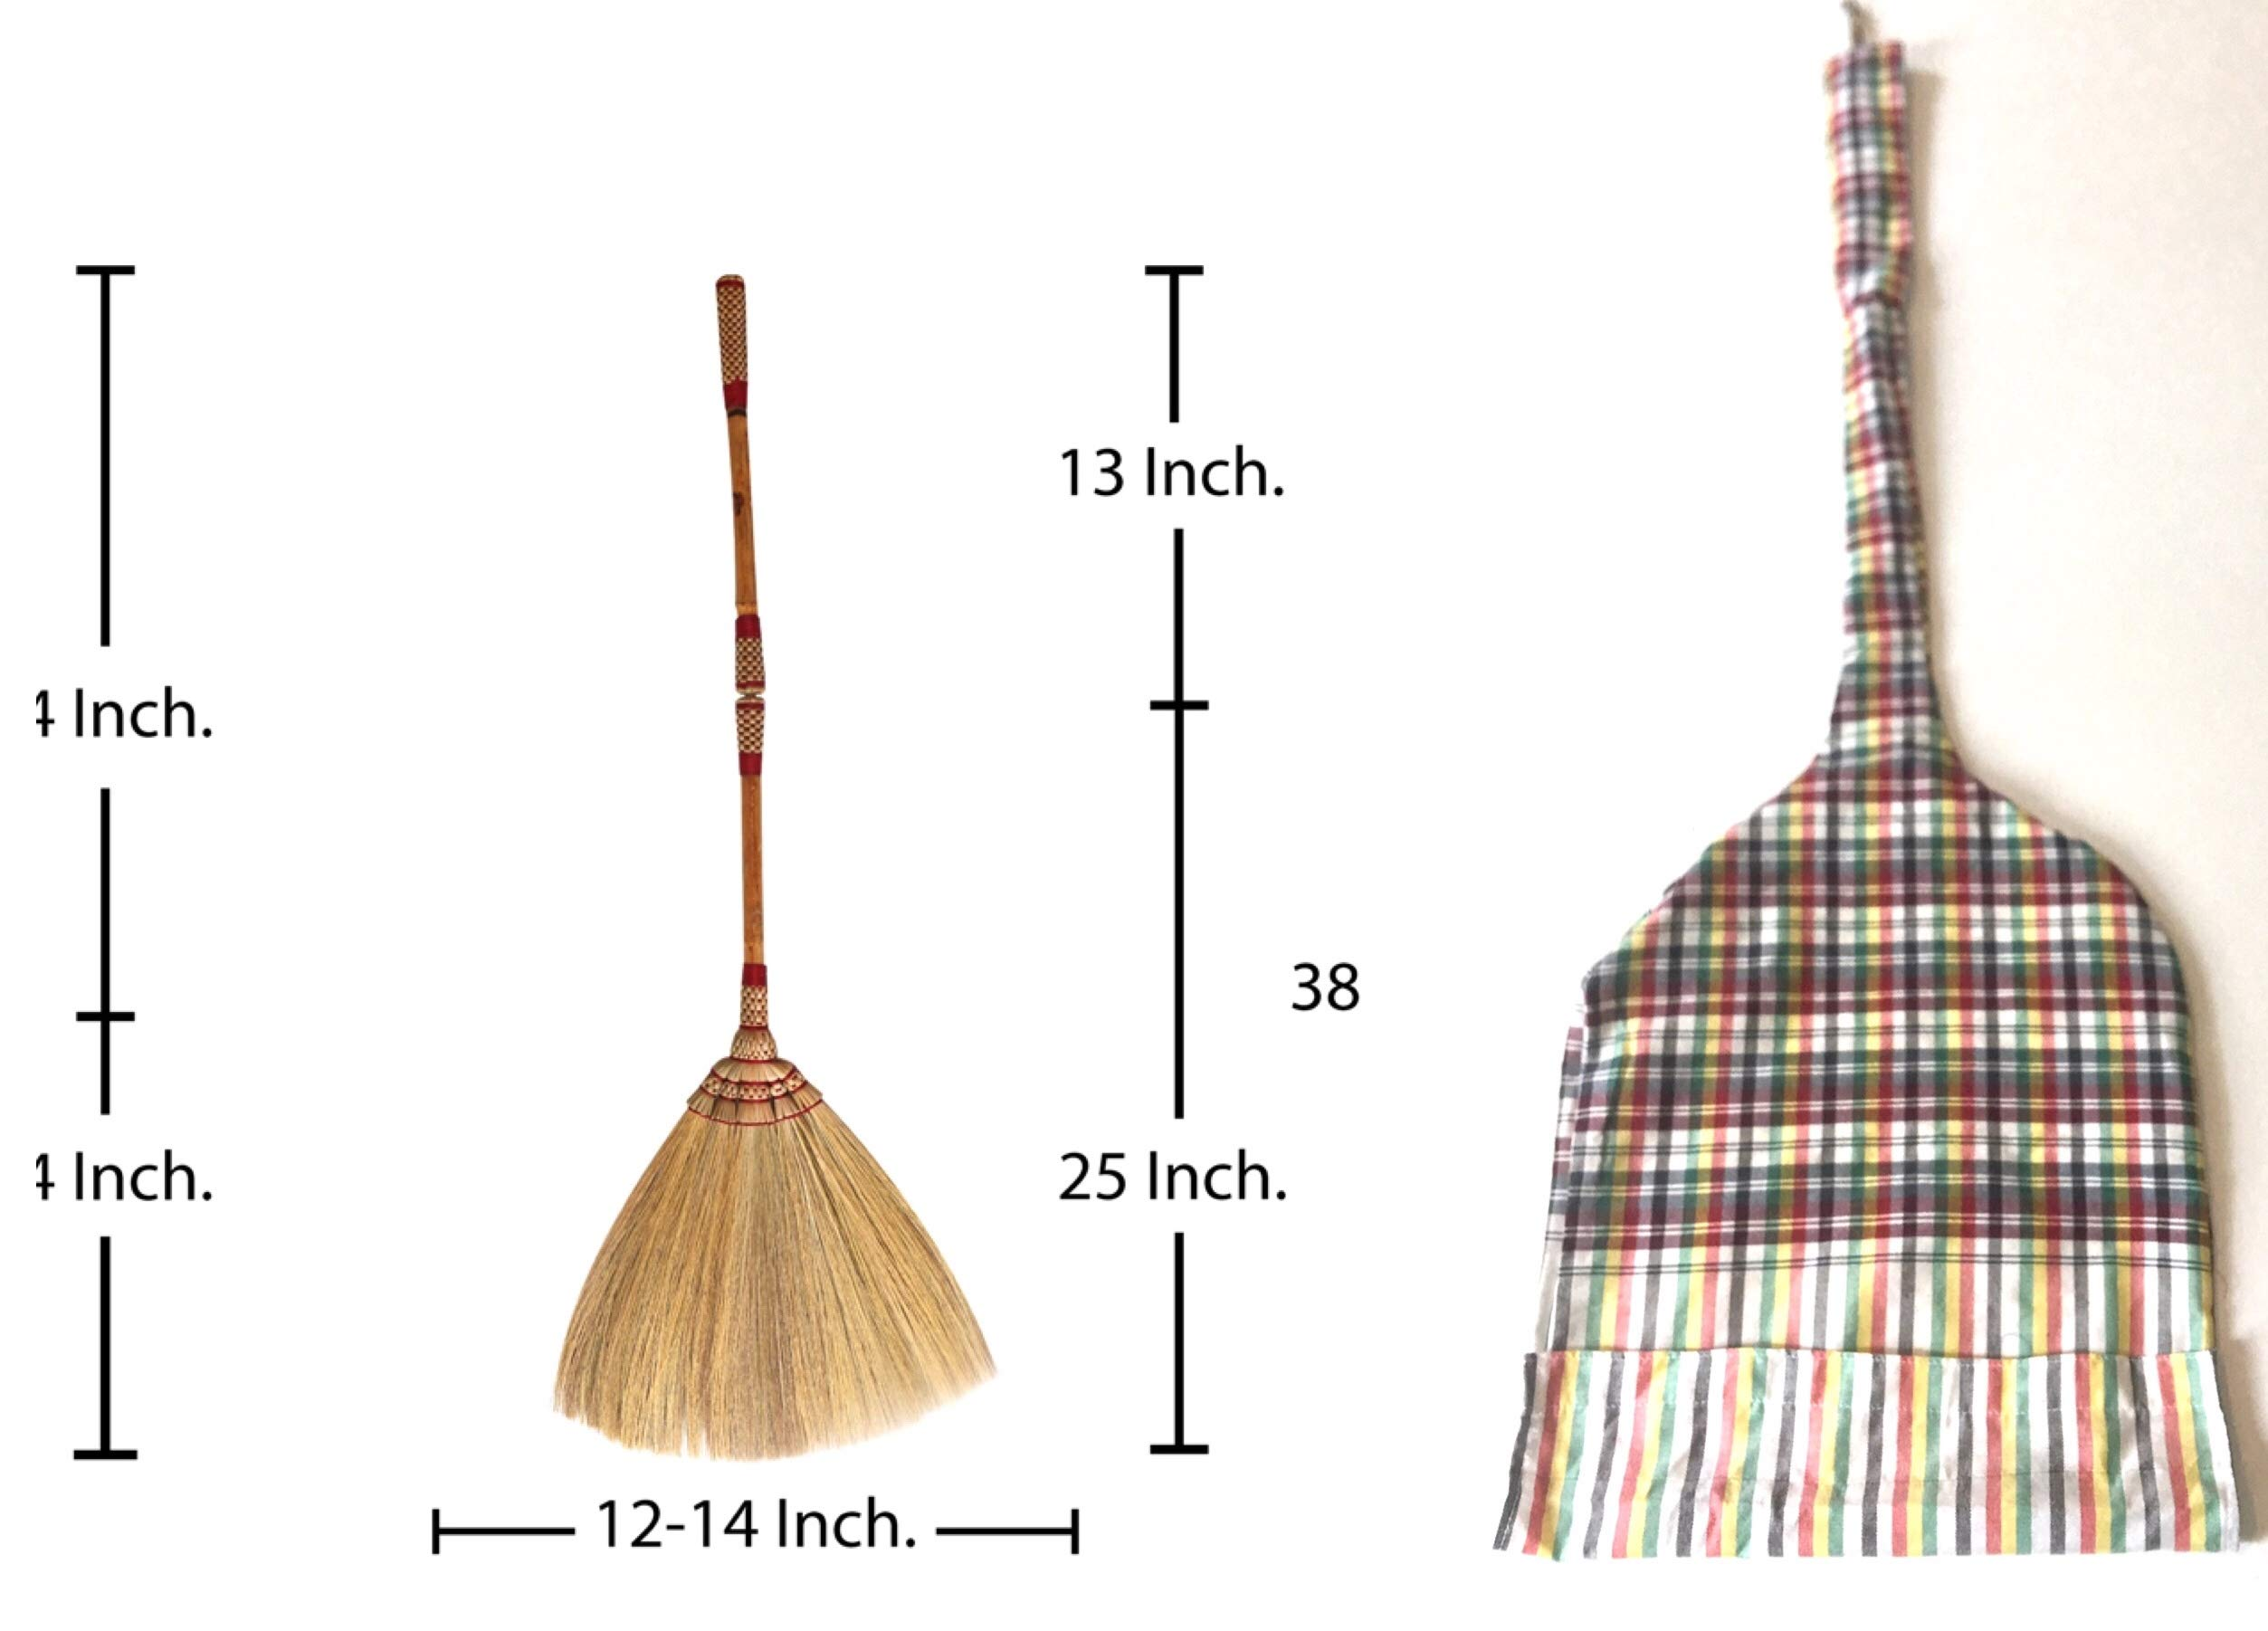 2 in 1 Natural Grass Broom Dustpan Vintage Style Thai Broom, Broomstick Bamboo Stick Handle Witch Broom Handmade Broom Housewarming Gift Tradition Thailand